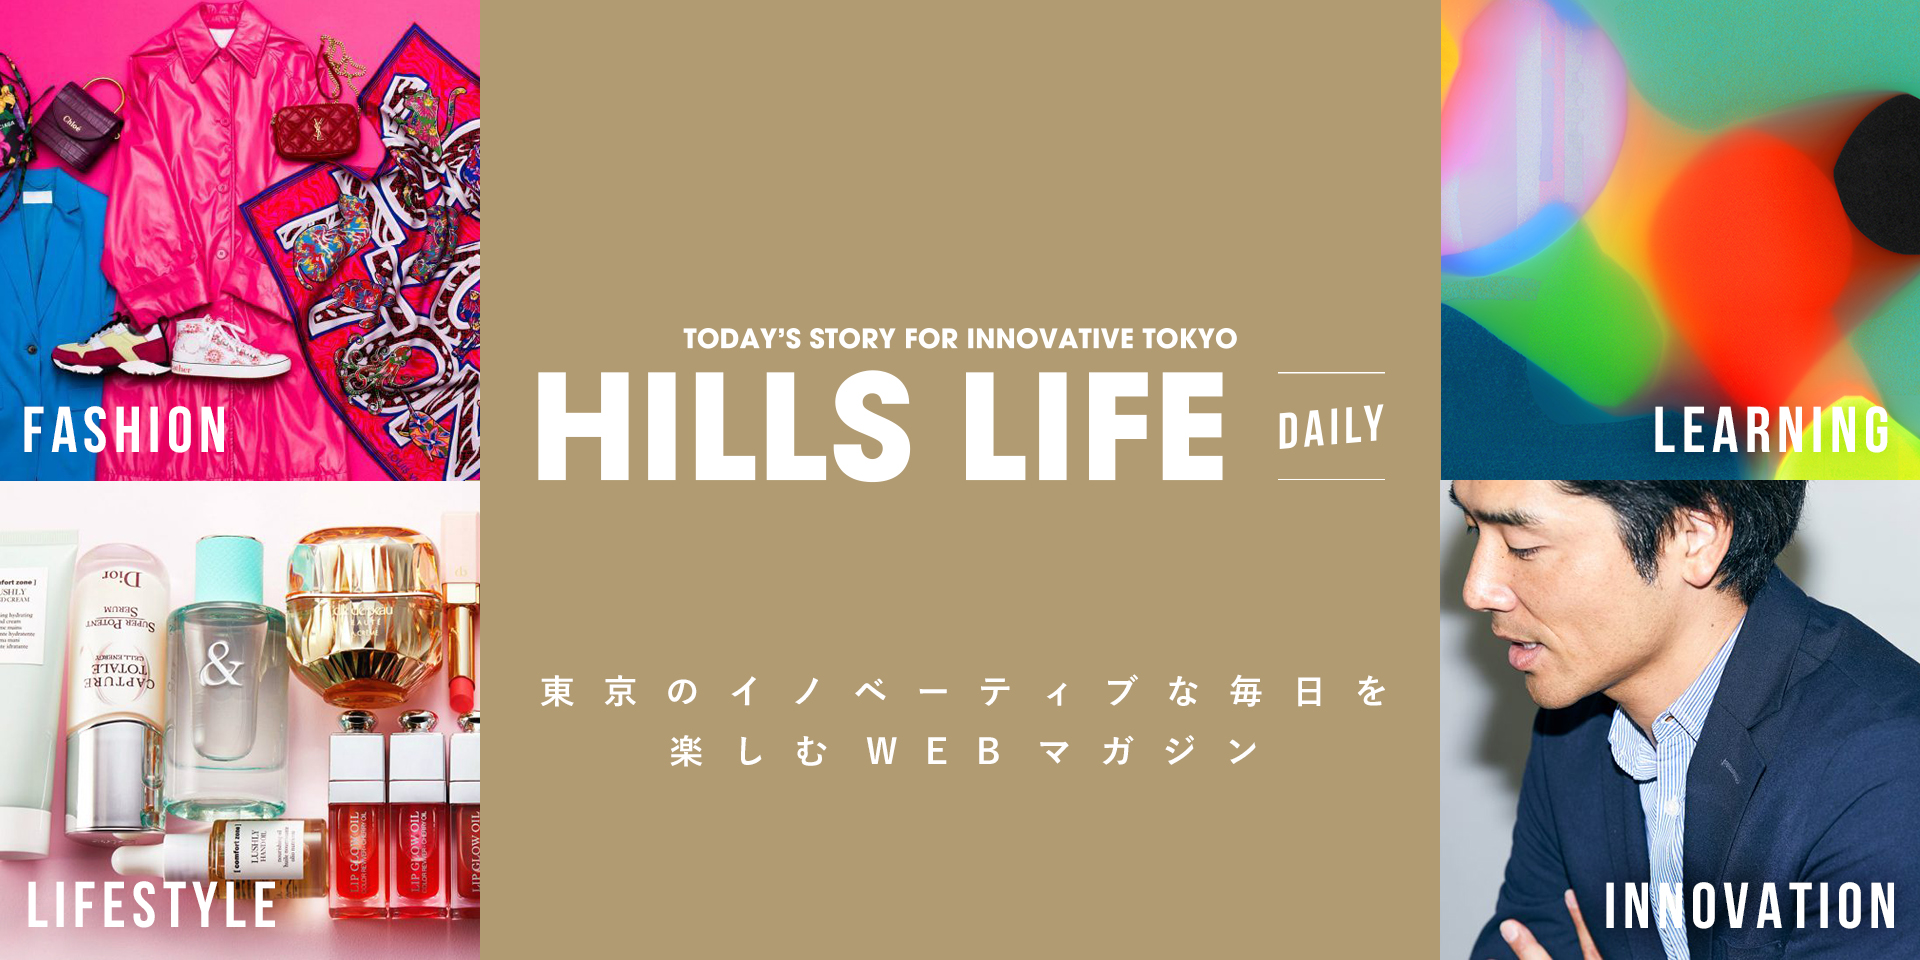 HILLS LIFE DAILY